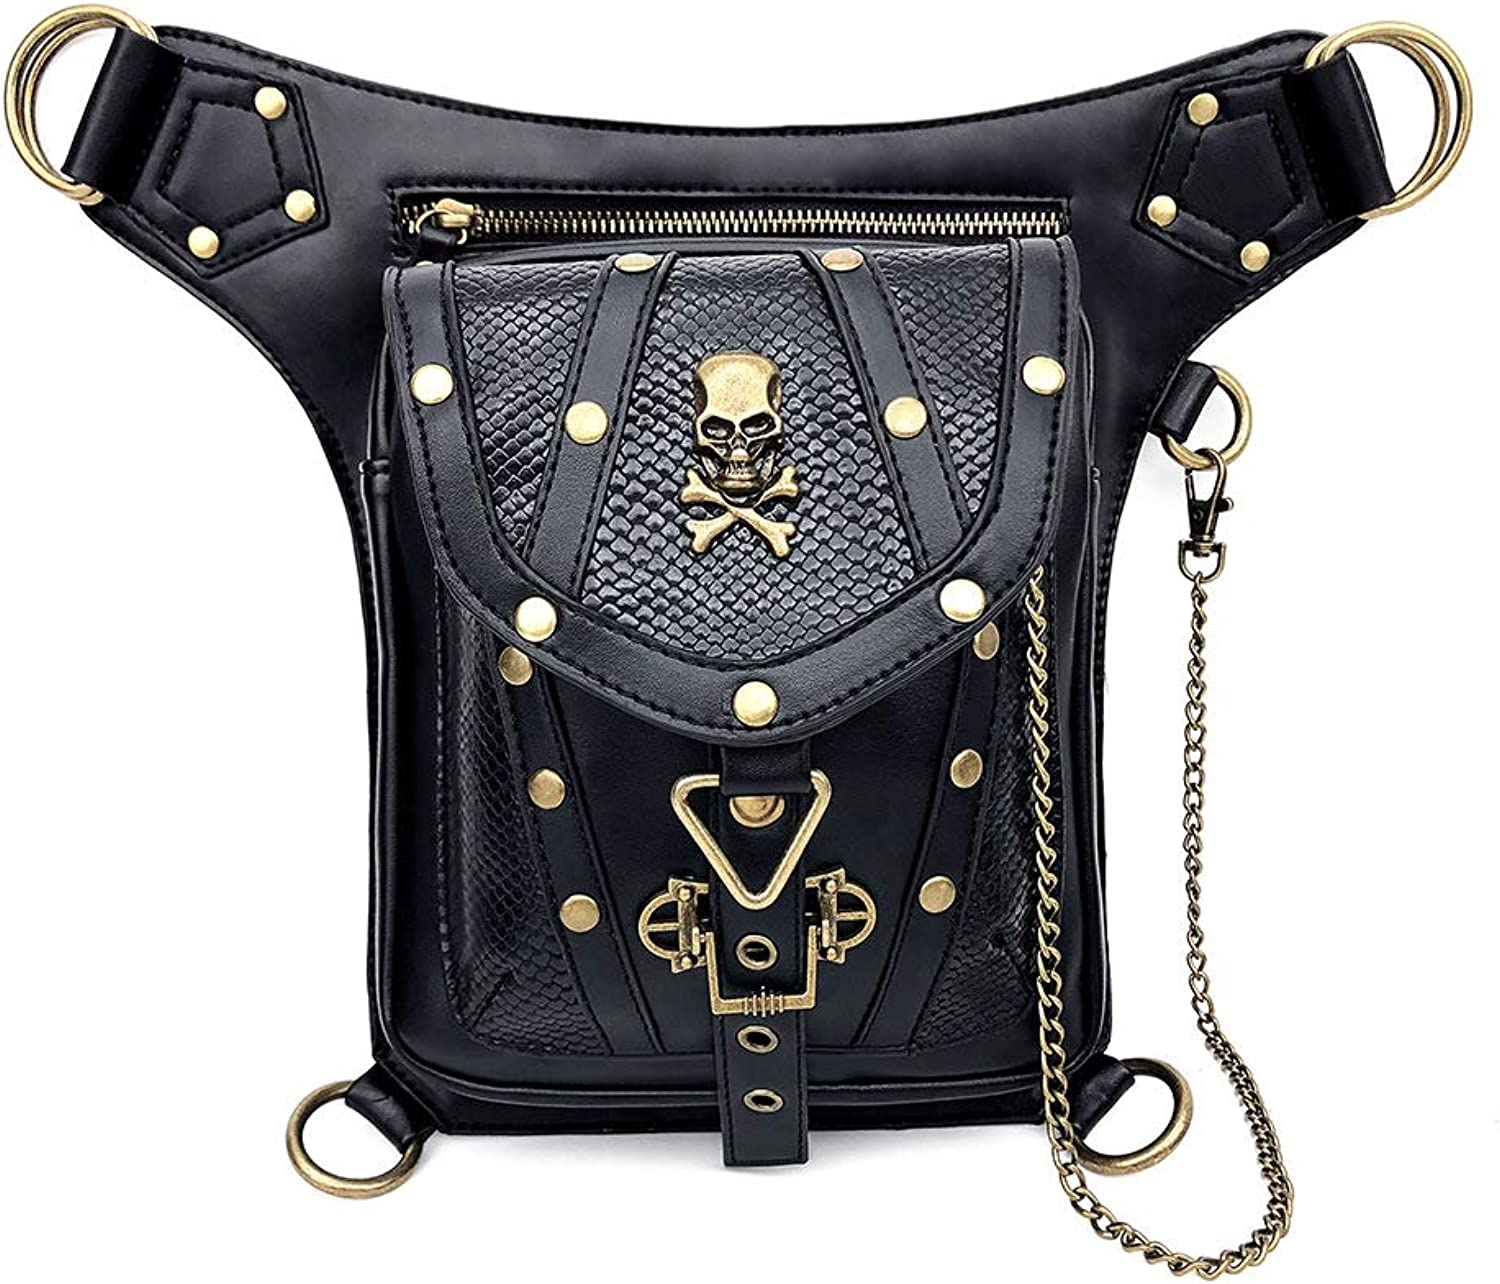 Vintage Rock Gothic Shoulder Waist Leg Thigh Holster Bags PU Leather Fanny Bag Multi-Purpose Tactical Drop Leg Arm Steampunk Retro Motorcycle Lady Bag Black